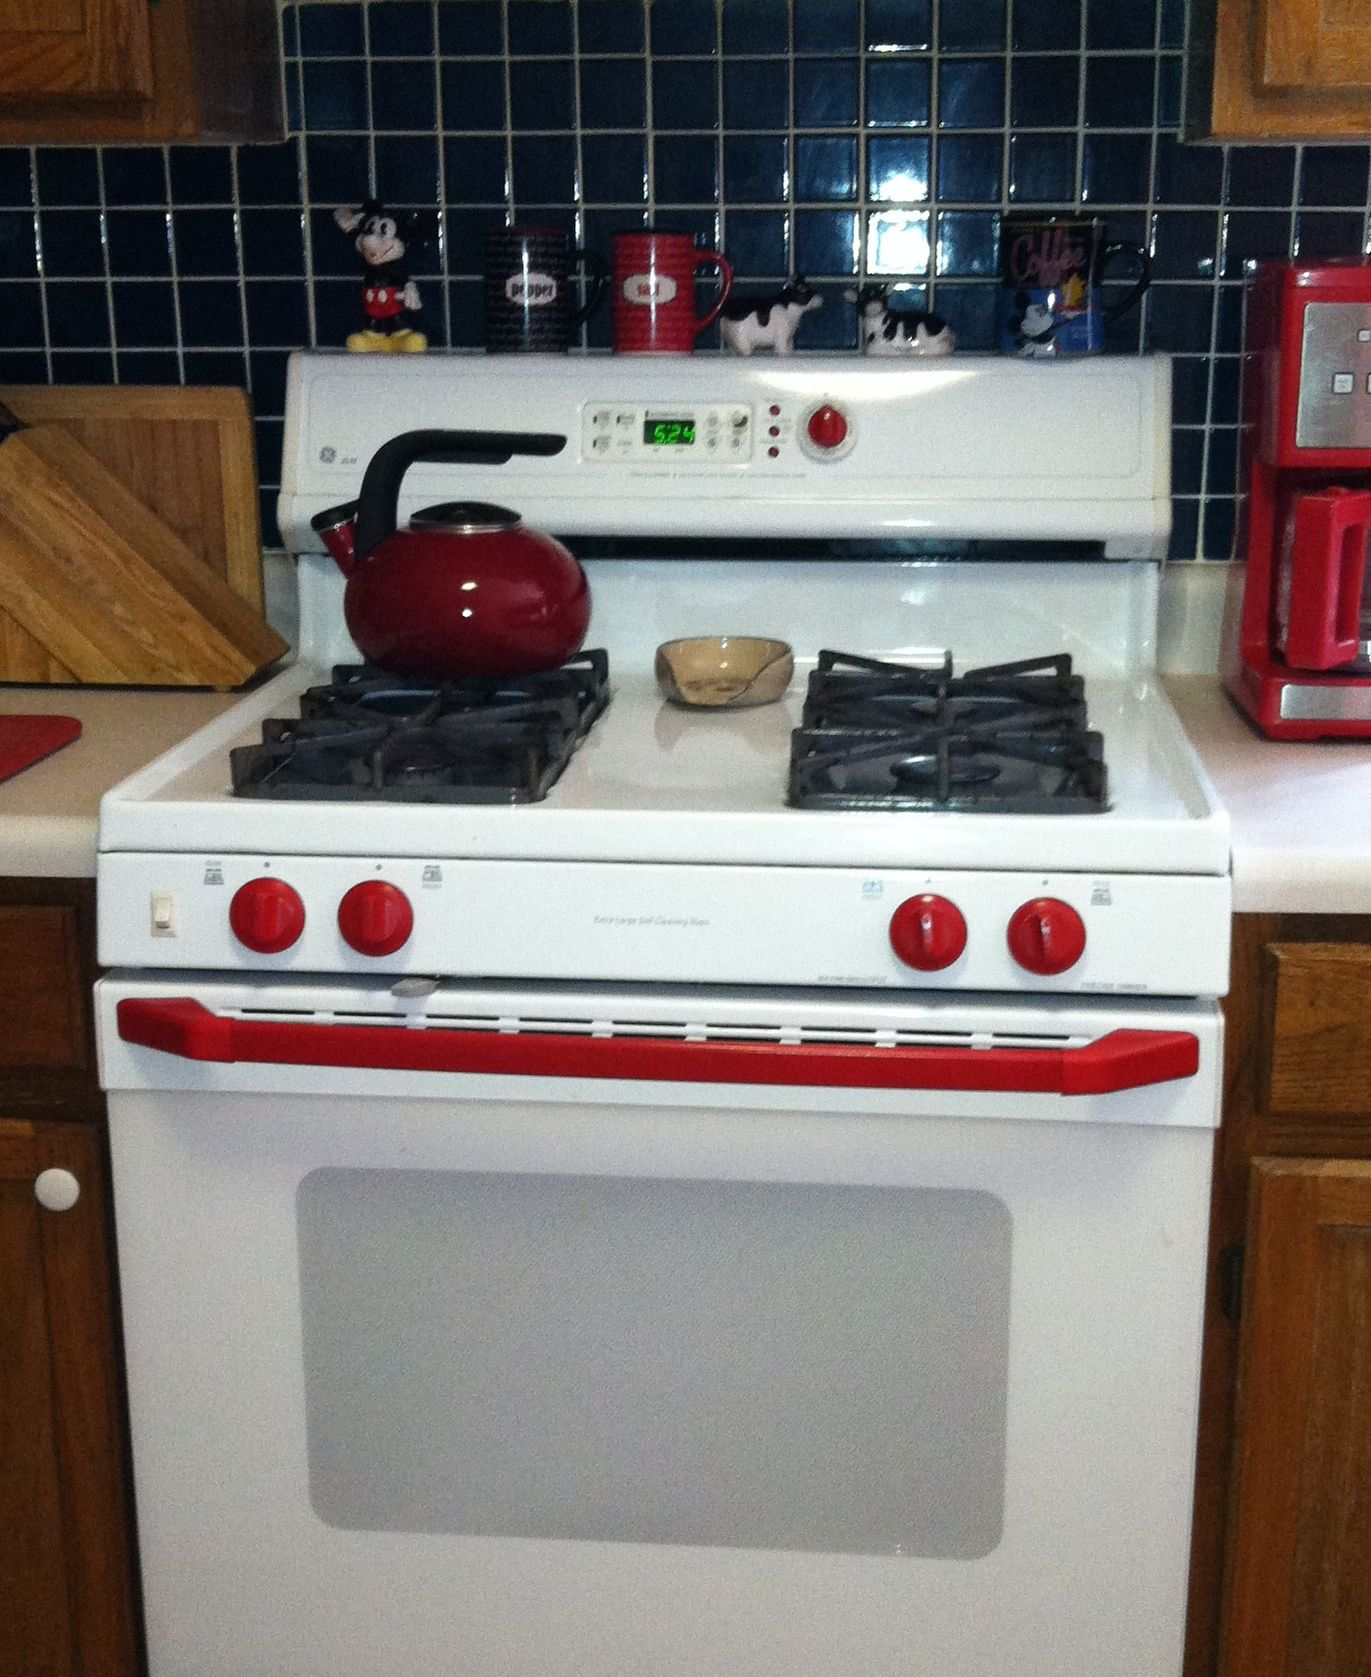 Used red spray paint to brighten up the knobs and handle on a white stove knobs removed easily removing the door handle to paint it required taking apart